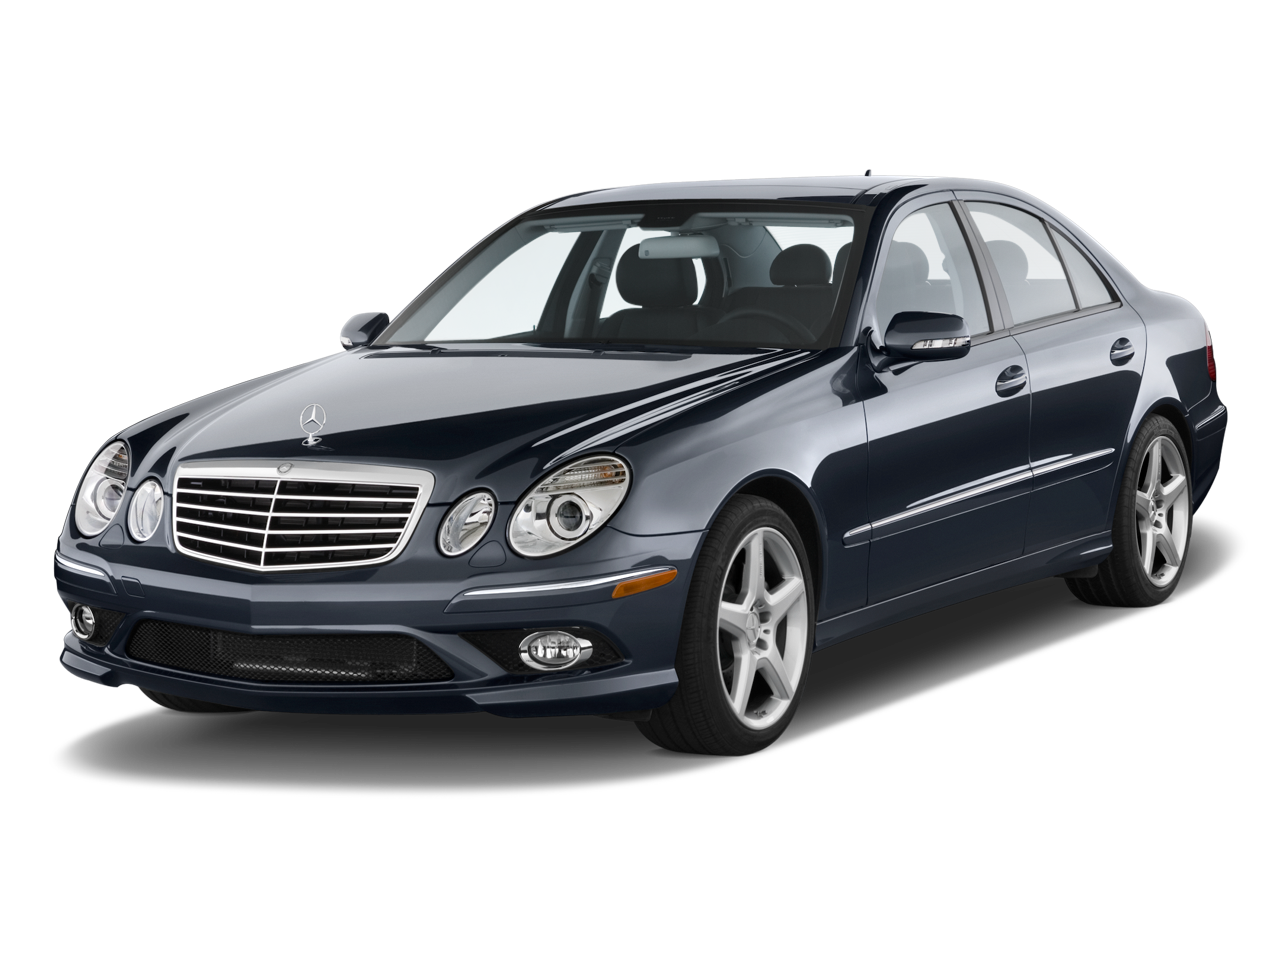 2009 mercedes benz e320 bluetec fuel efficient cars for Mercedes benz hybrid cars